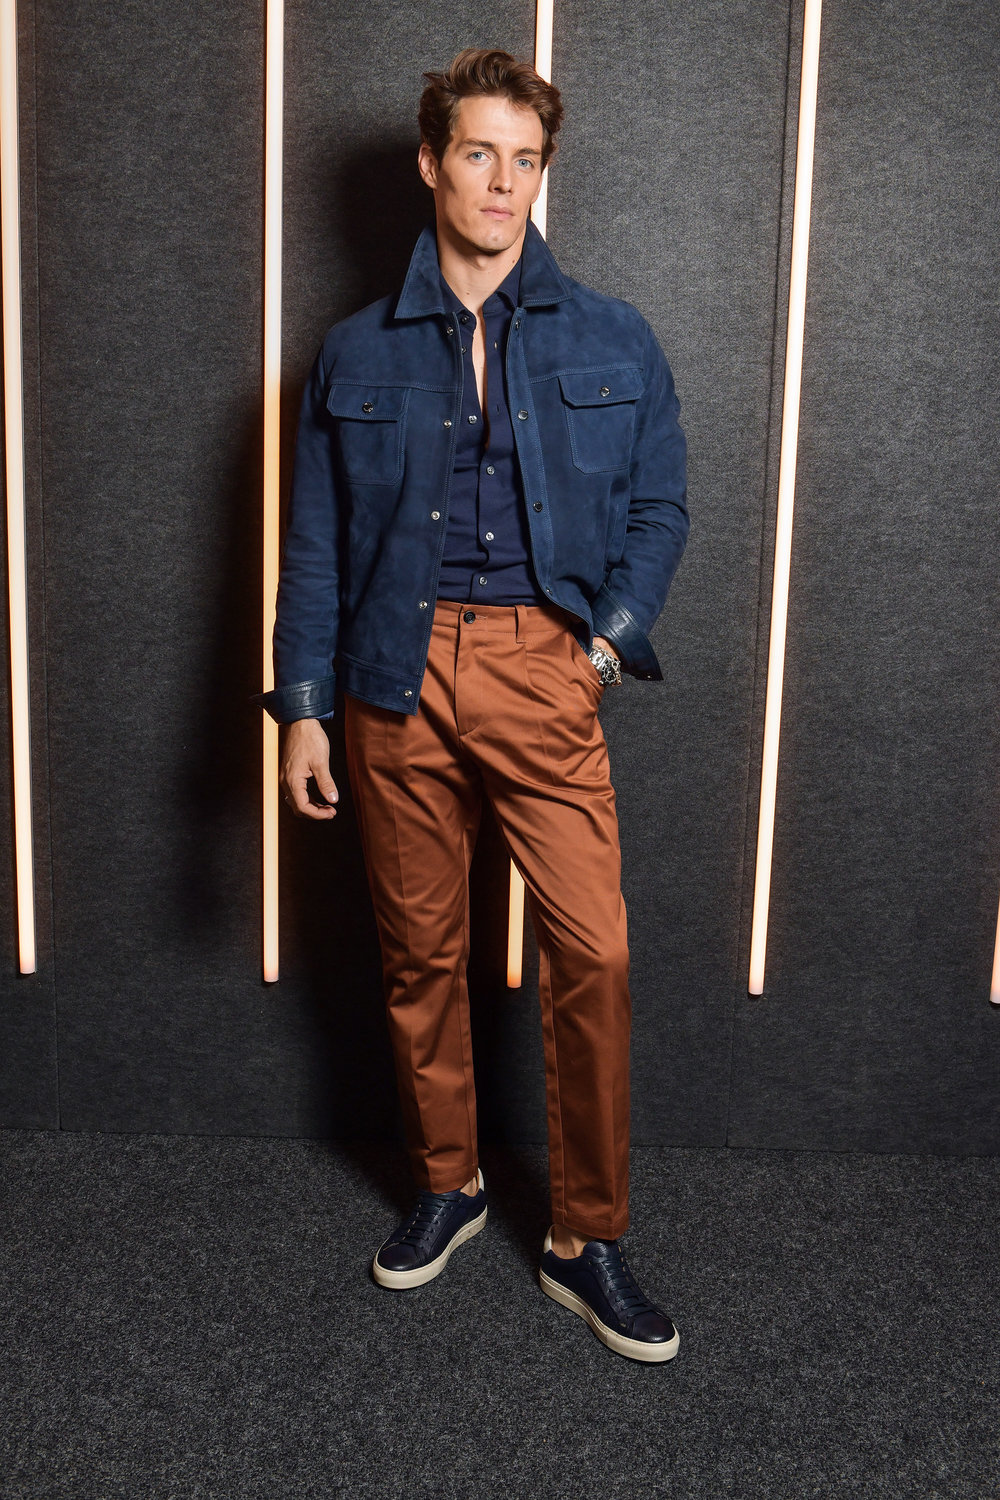 Marcos Fecchino backstage at the BOSS Fall/Winter 2019 show at Basketball City during New York Fashion Week on Wednesday, February 13, in New York City. Photography, Courtesy of BOSS.